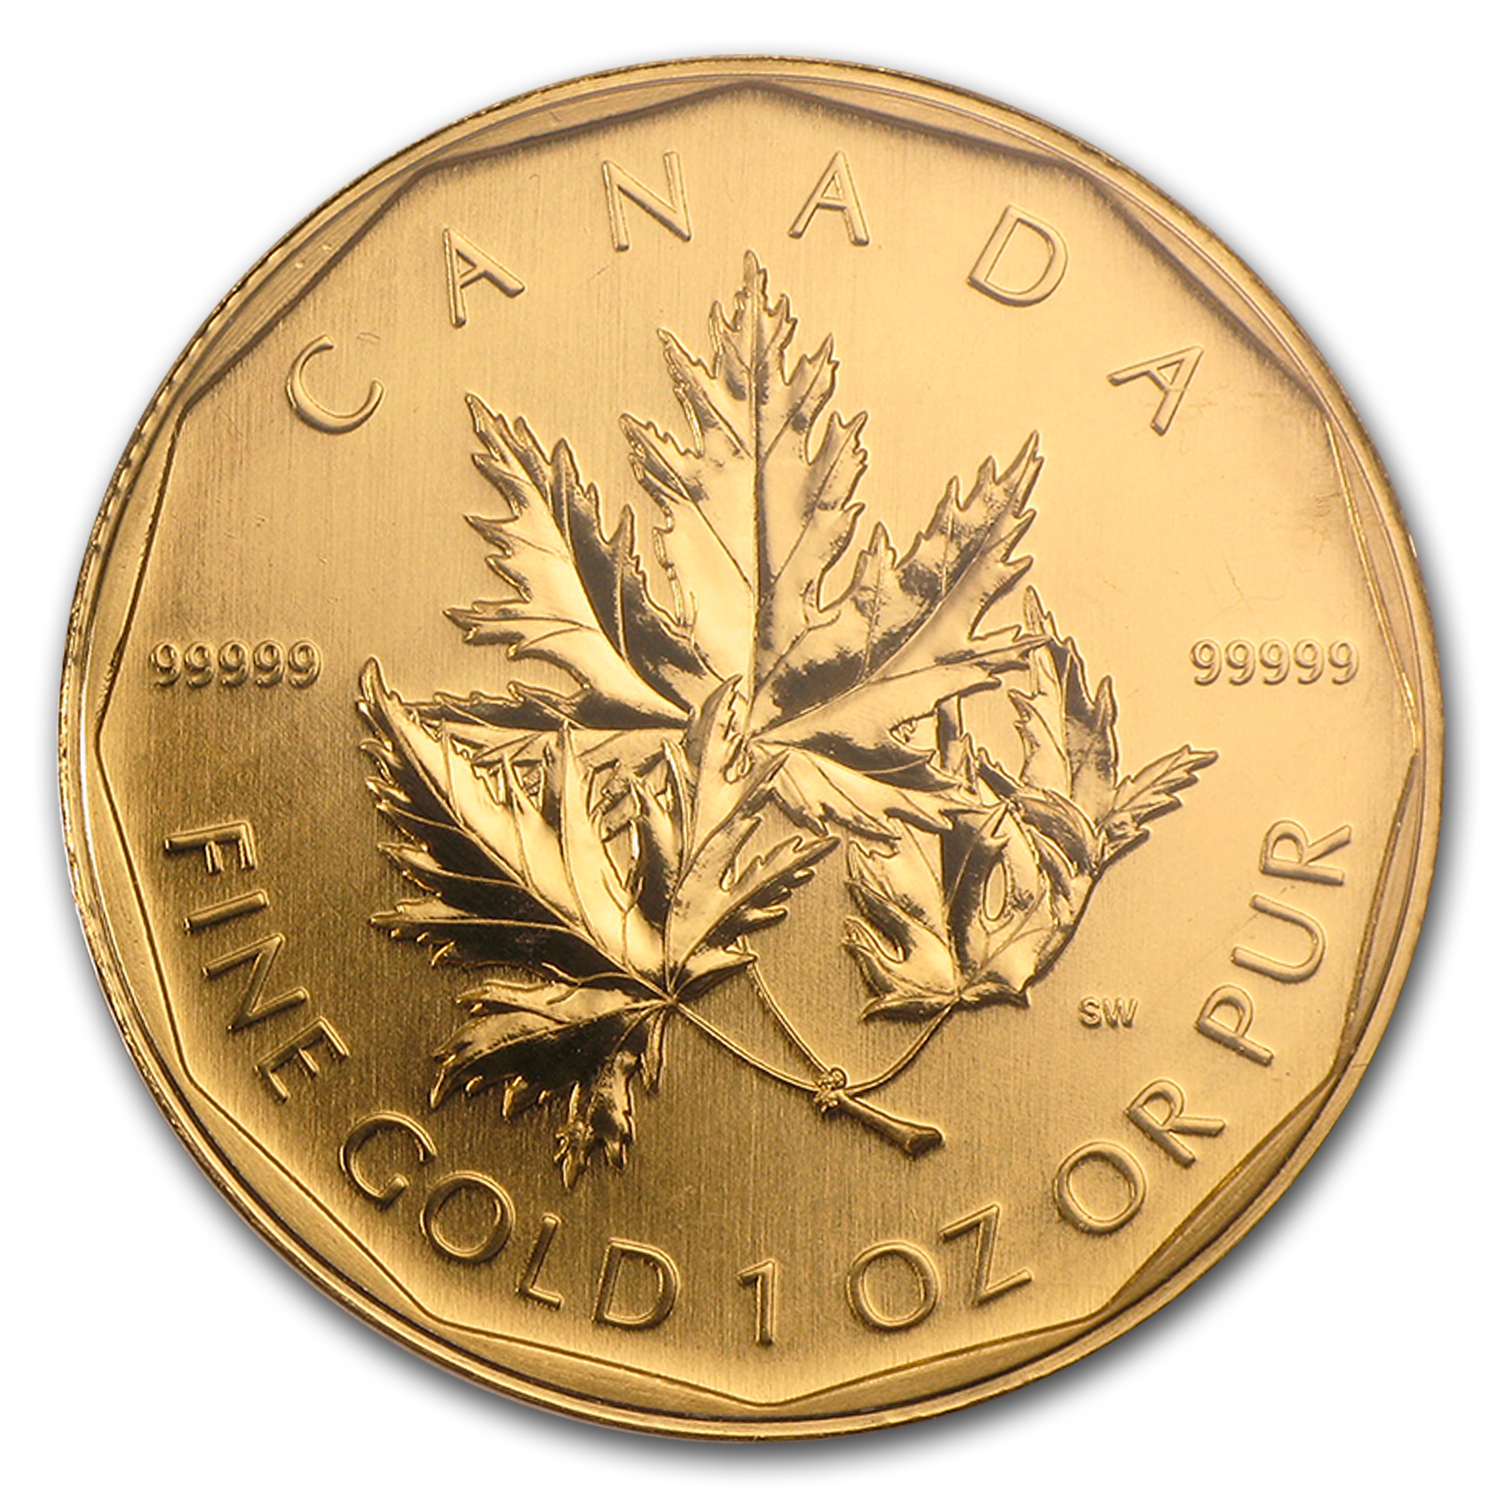 2007 Canada 1 oz Gold Maple Leaf .99999 BU (w/Assay Card)